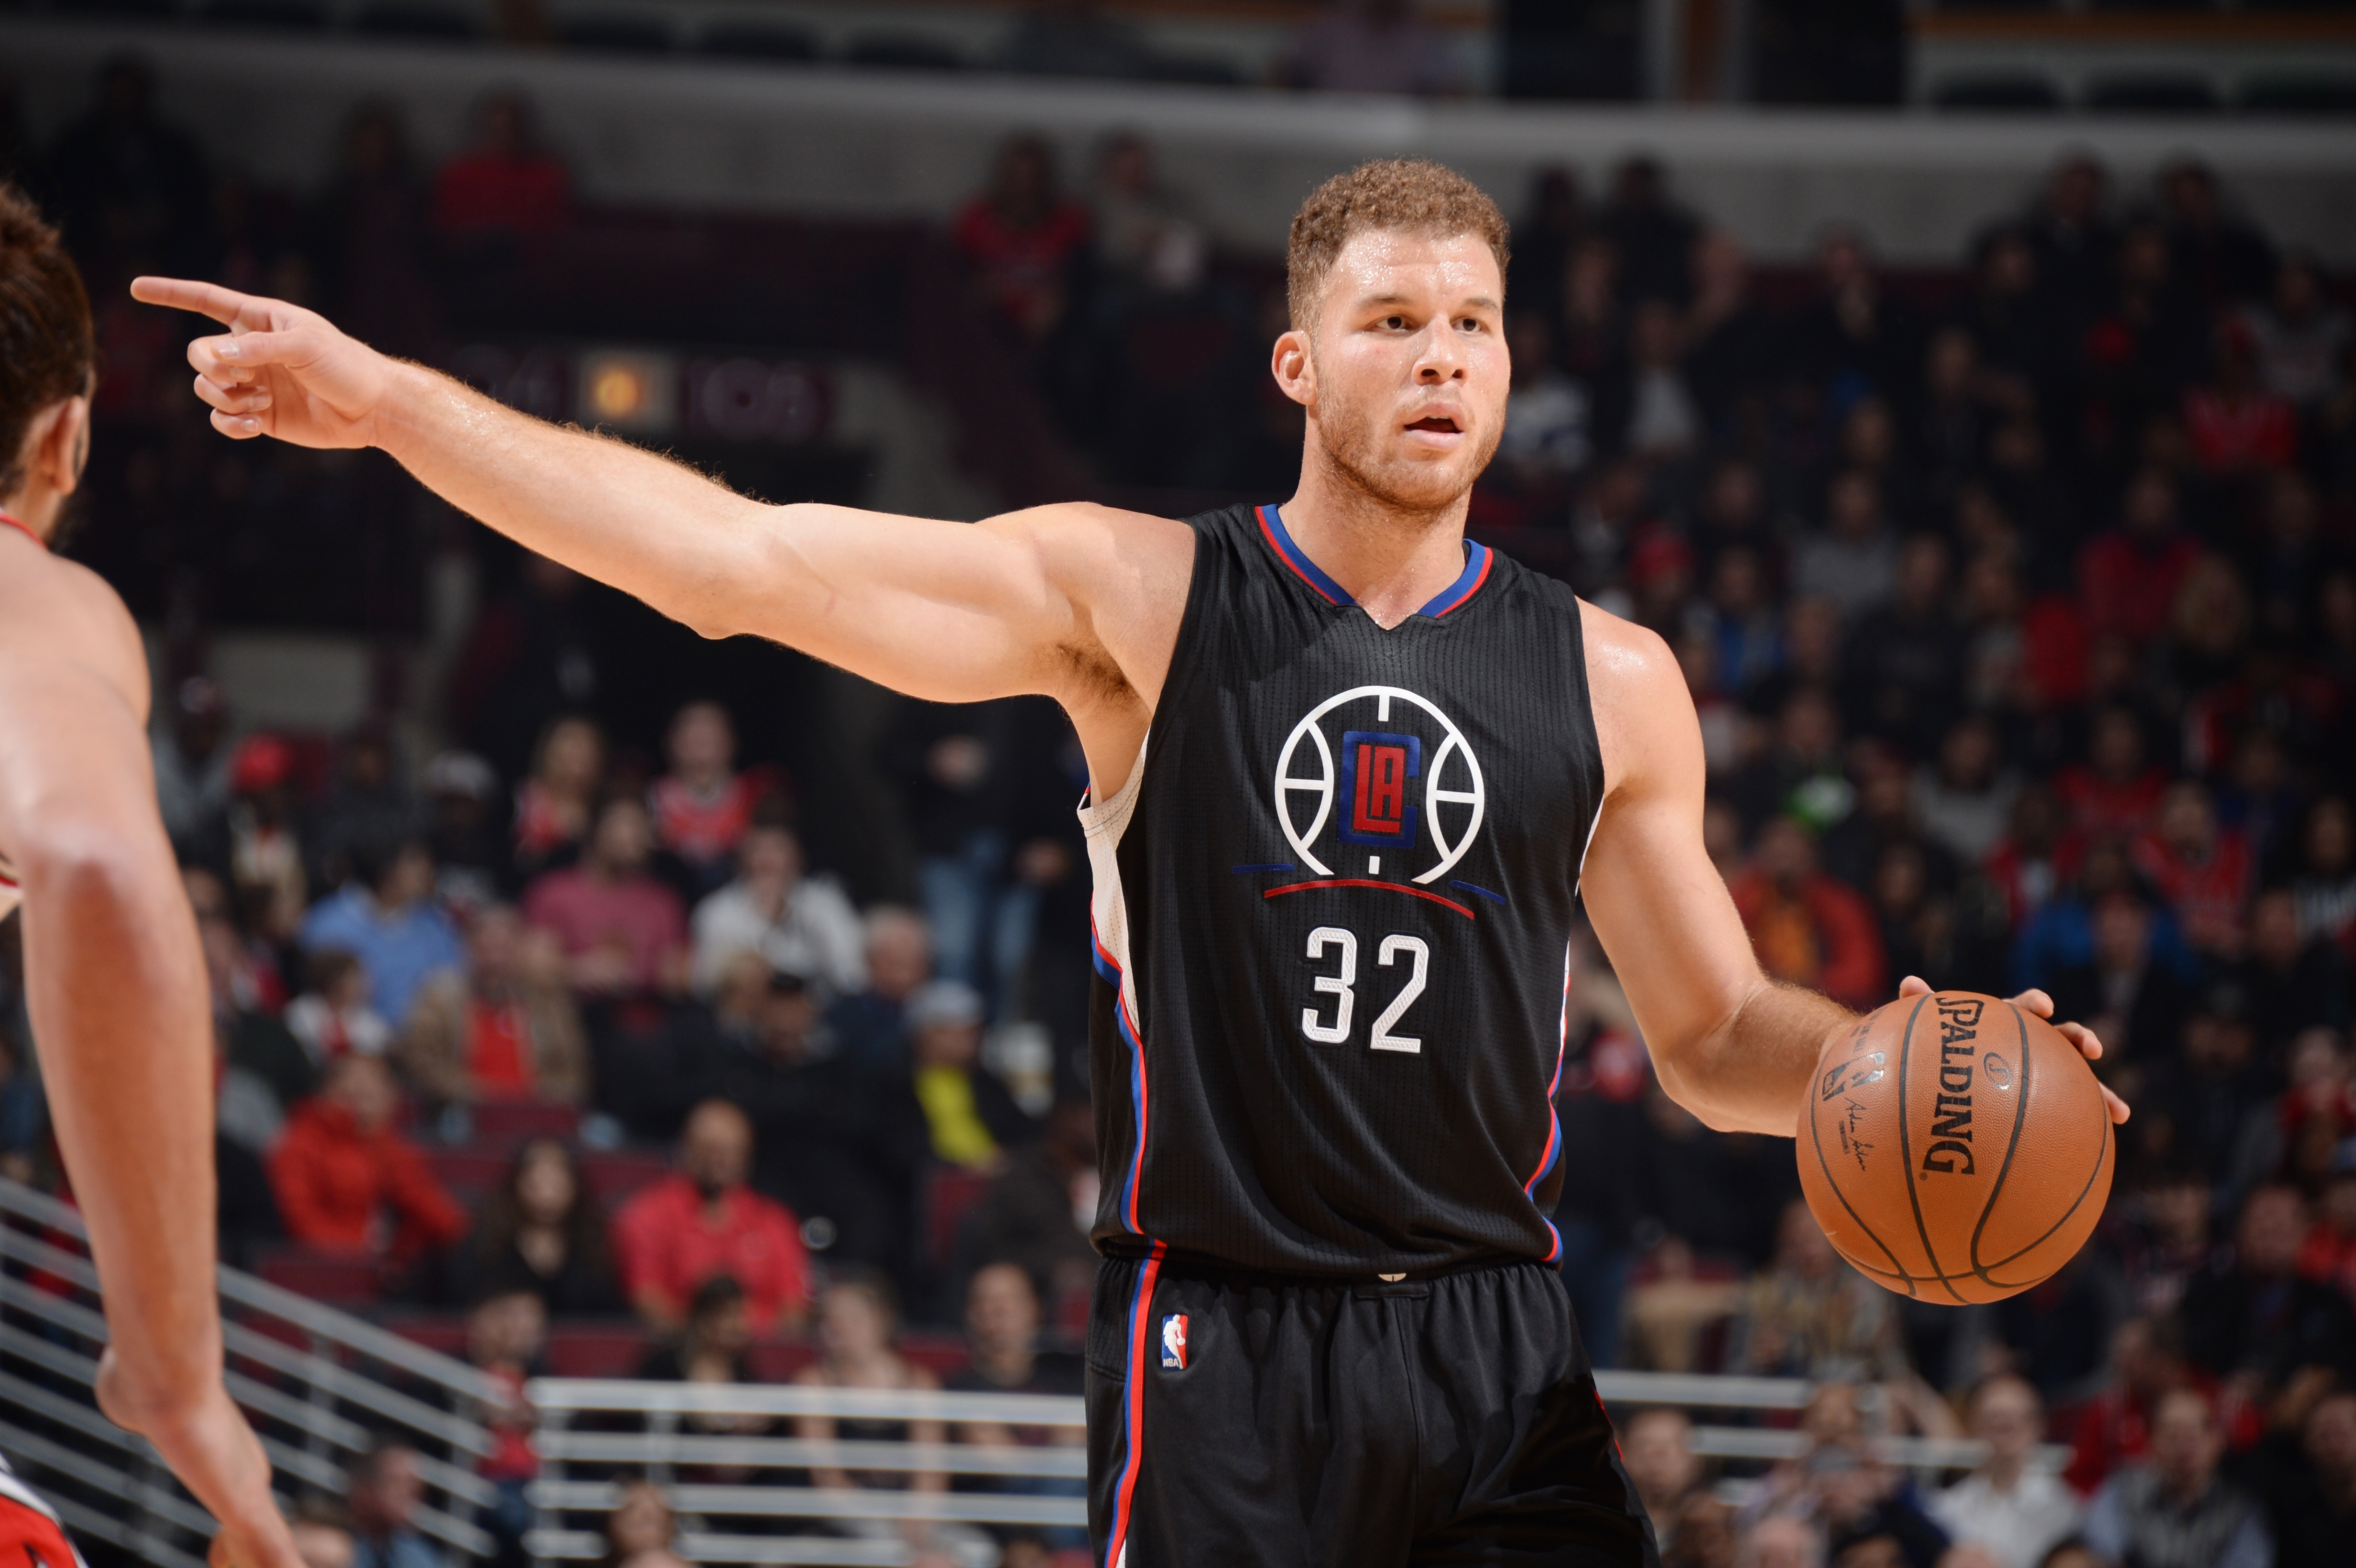 Clippers Vs Bulls Photo: No Hard Feelings After Griffin Ejection